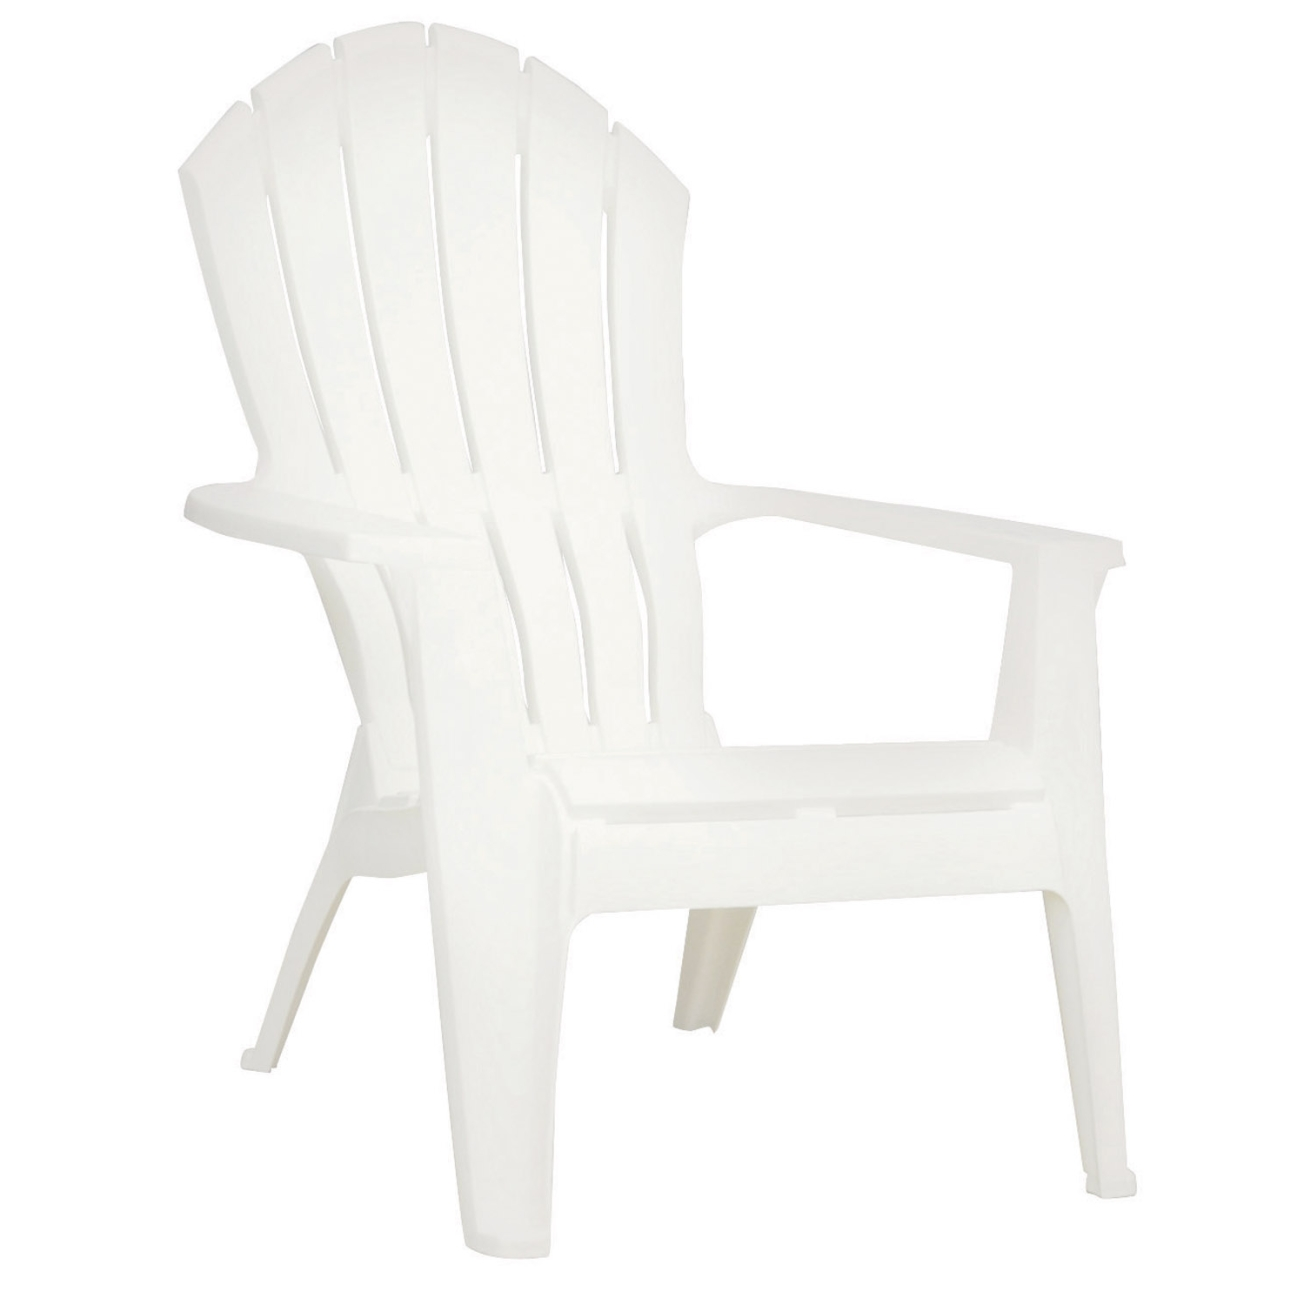 plastic adirondack chairs adams realcomfort adirondack chair 1 pc. white (8371-48-3700) - OVTESDY